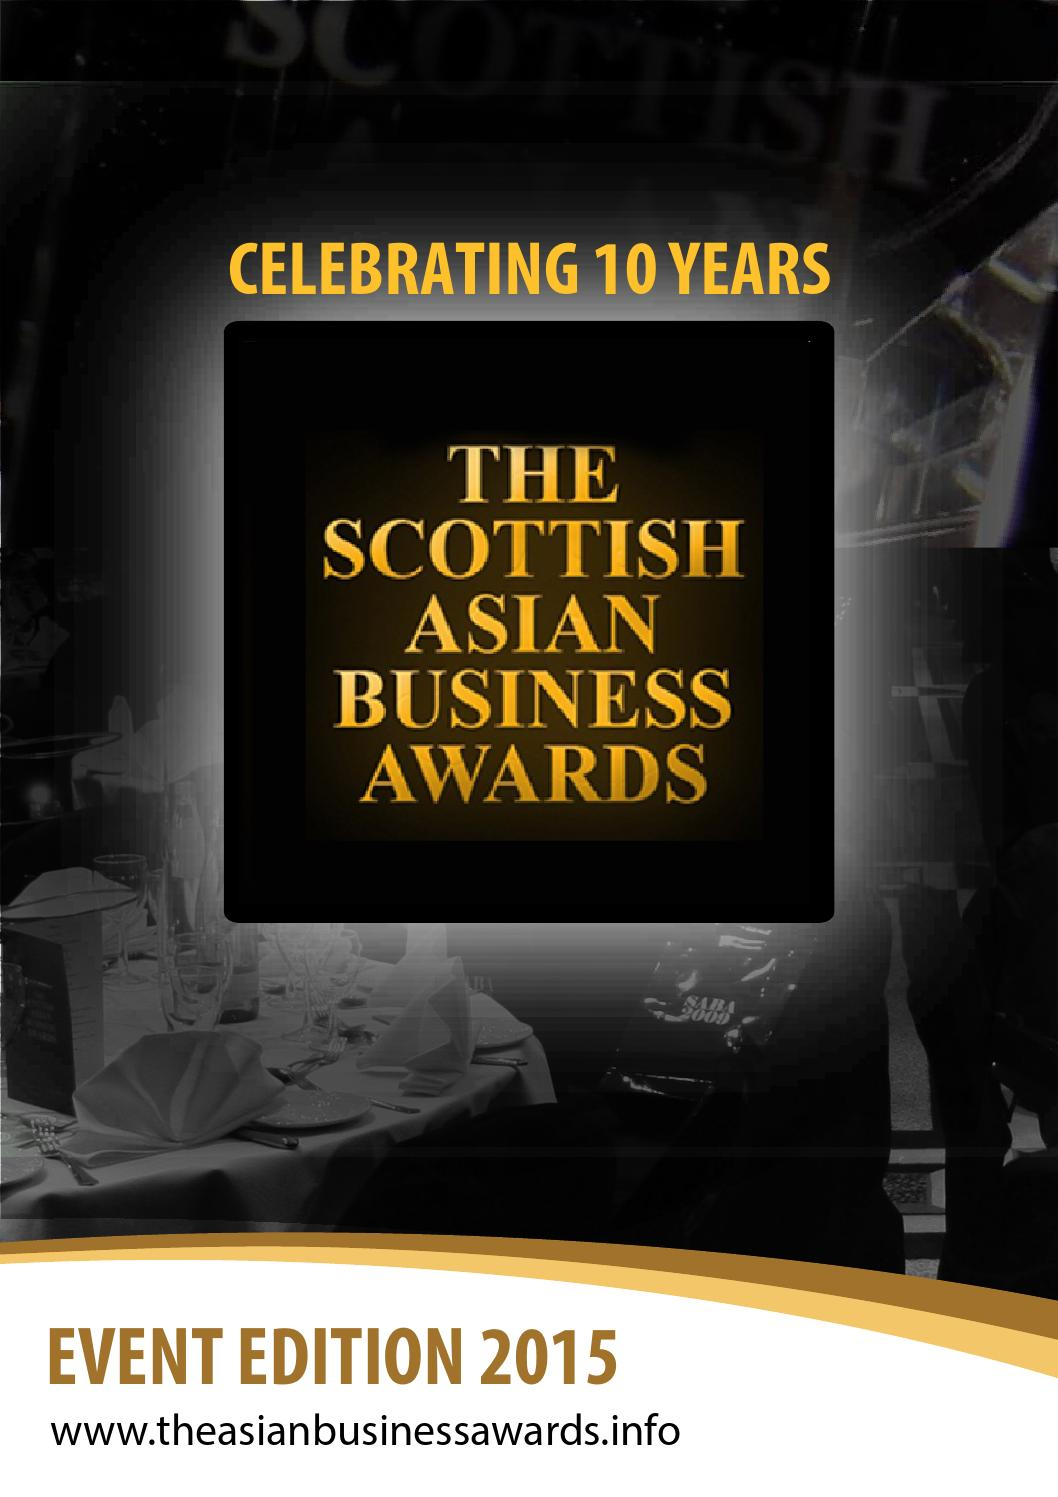 event sponsor proposal%0A The Scottish Asian Business Awards Event Edition      by OceanicConsulting   issuu